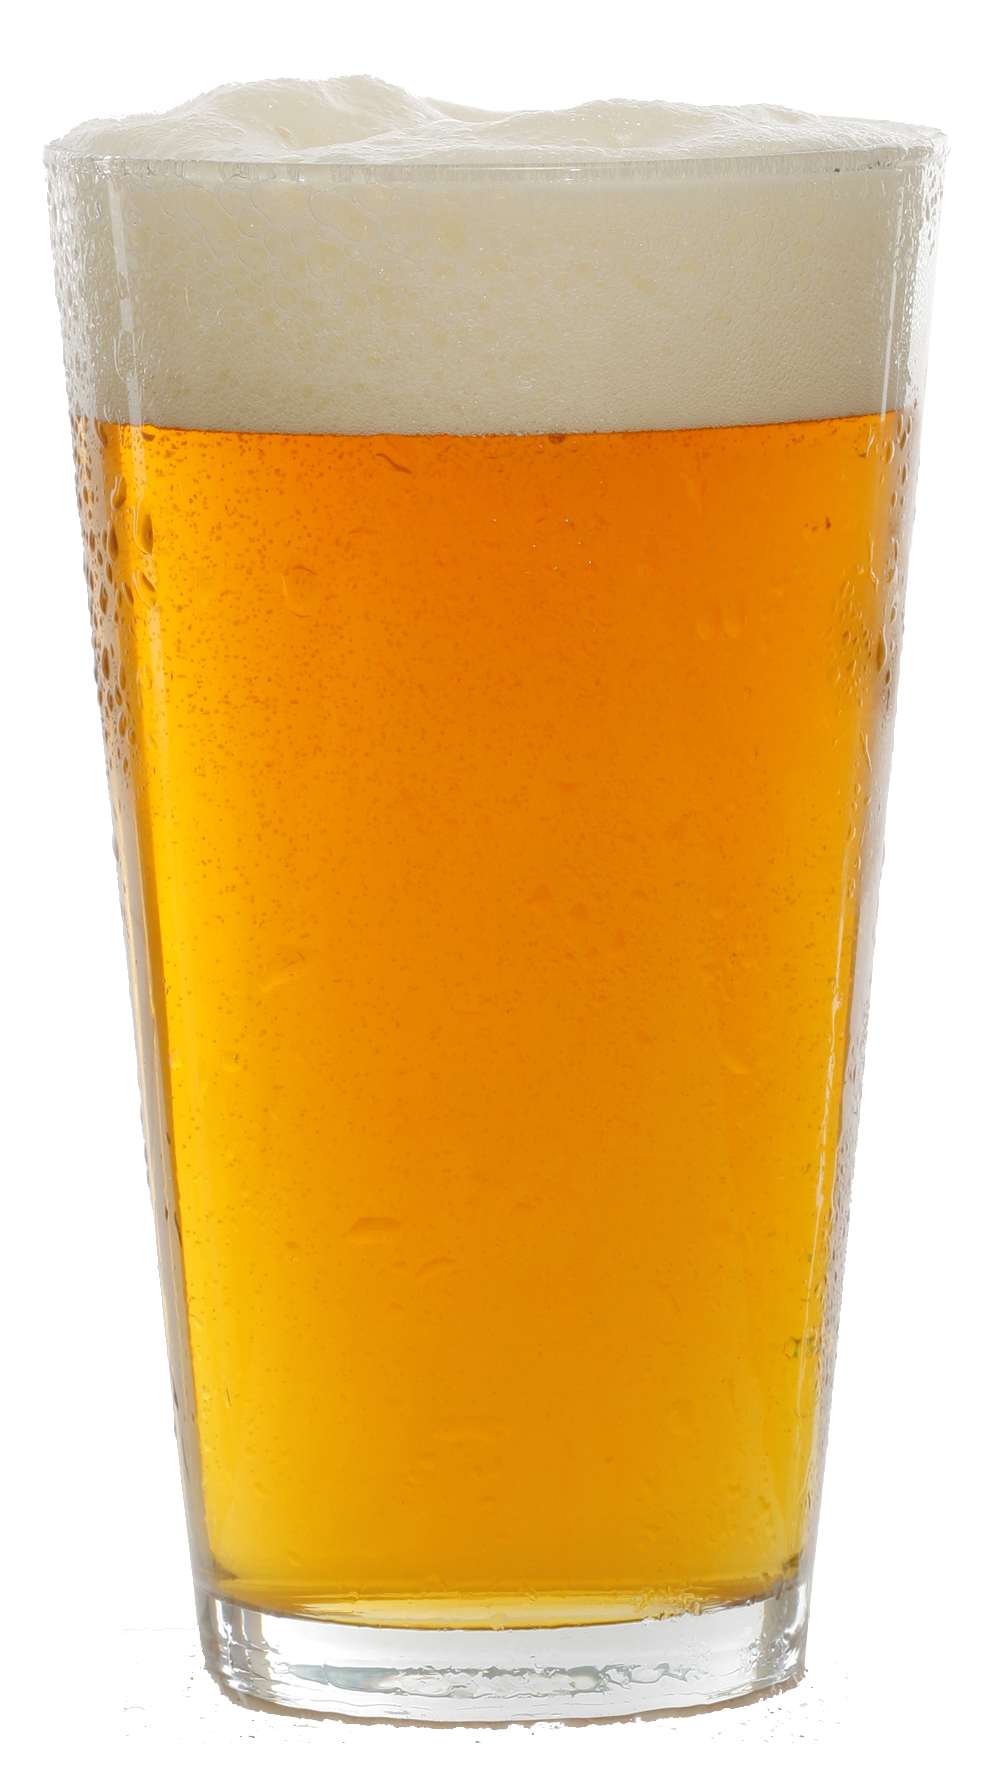 Beer PNG images, free beer pictures download.